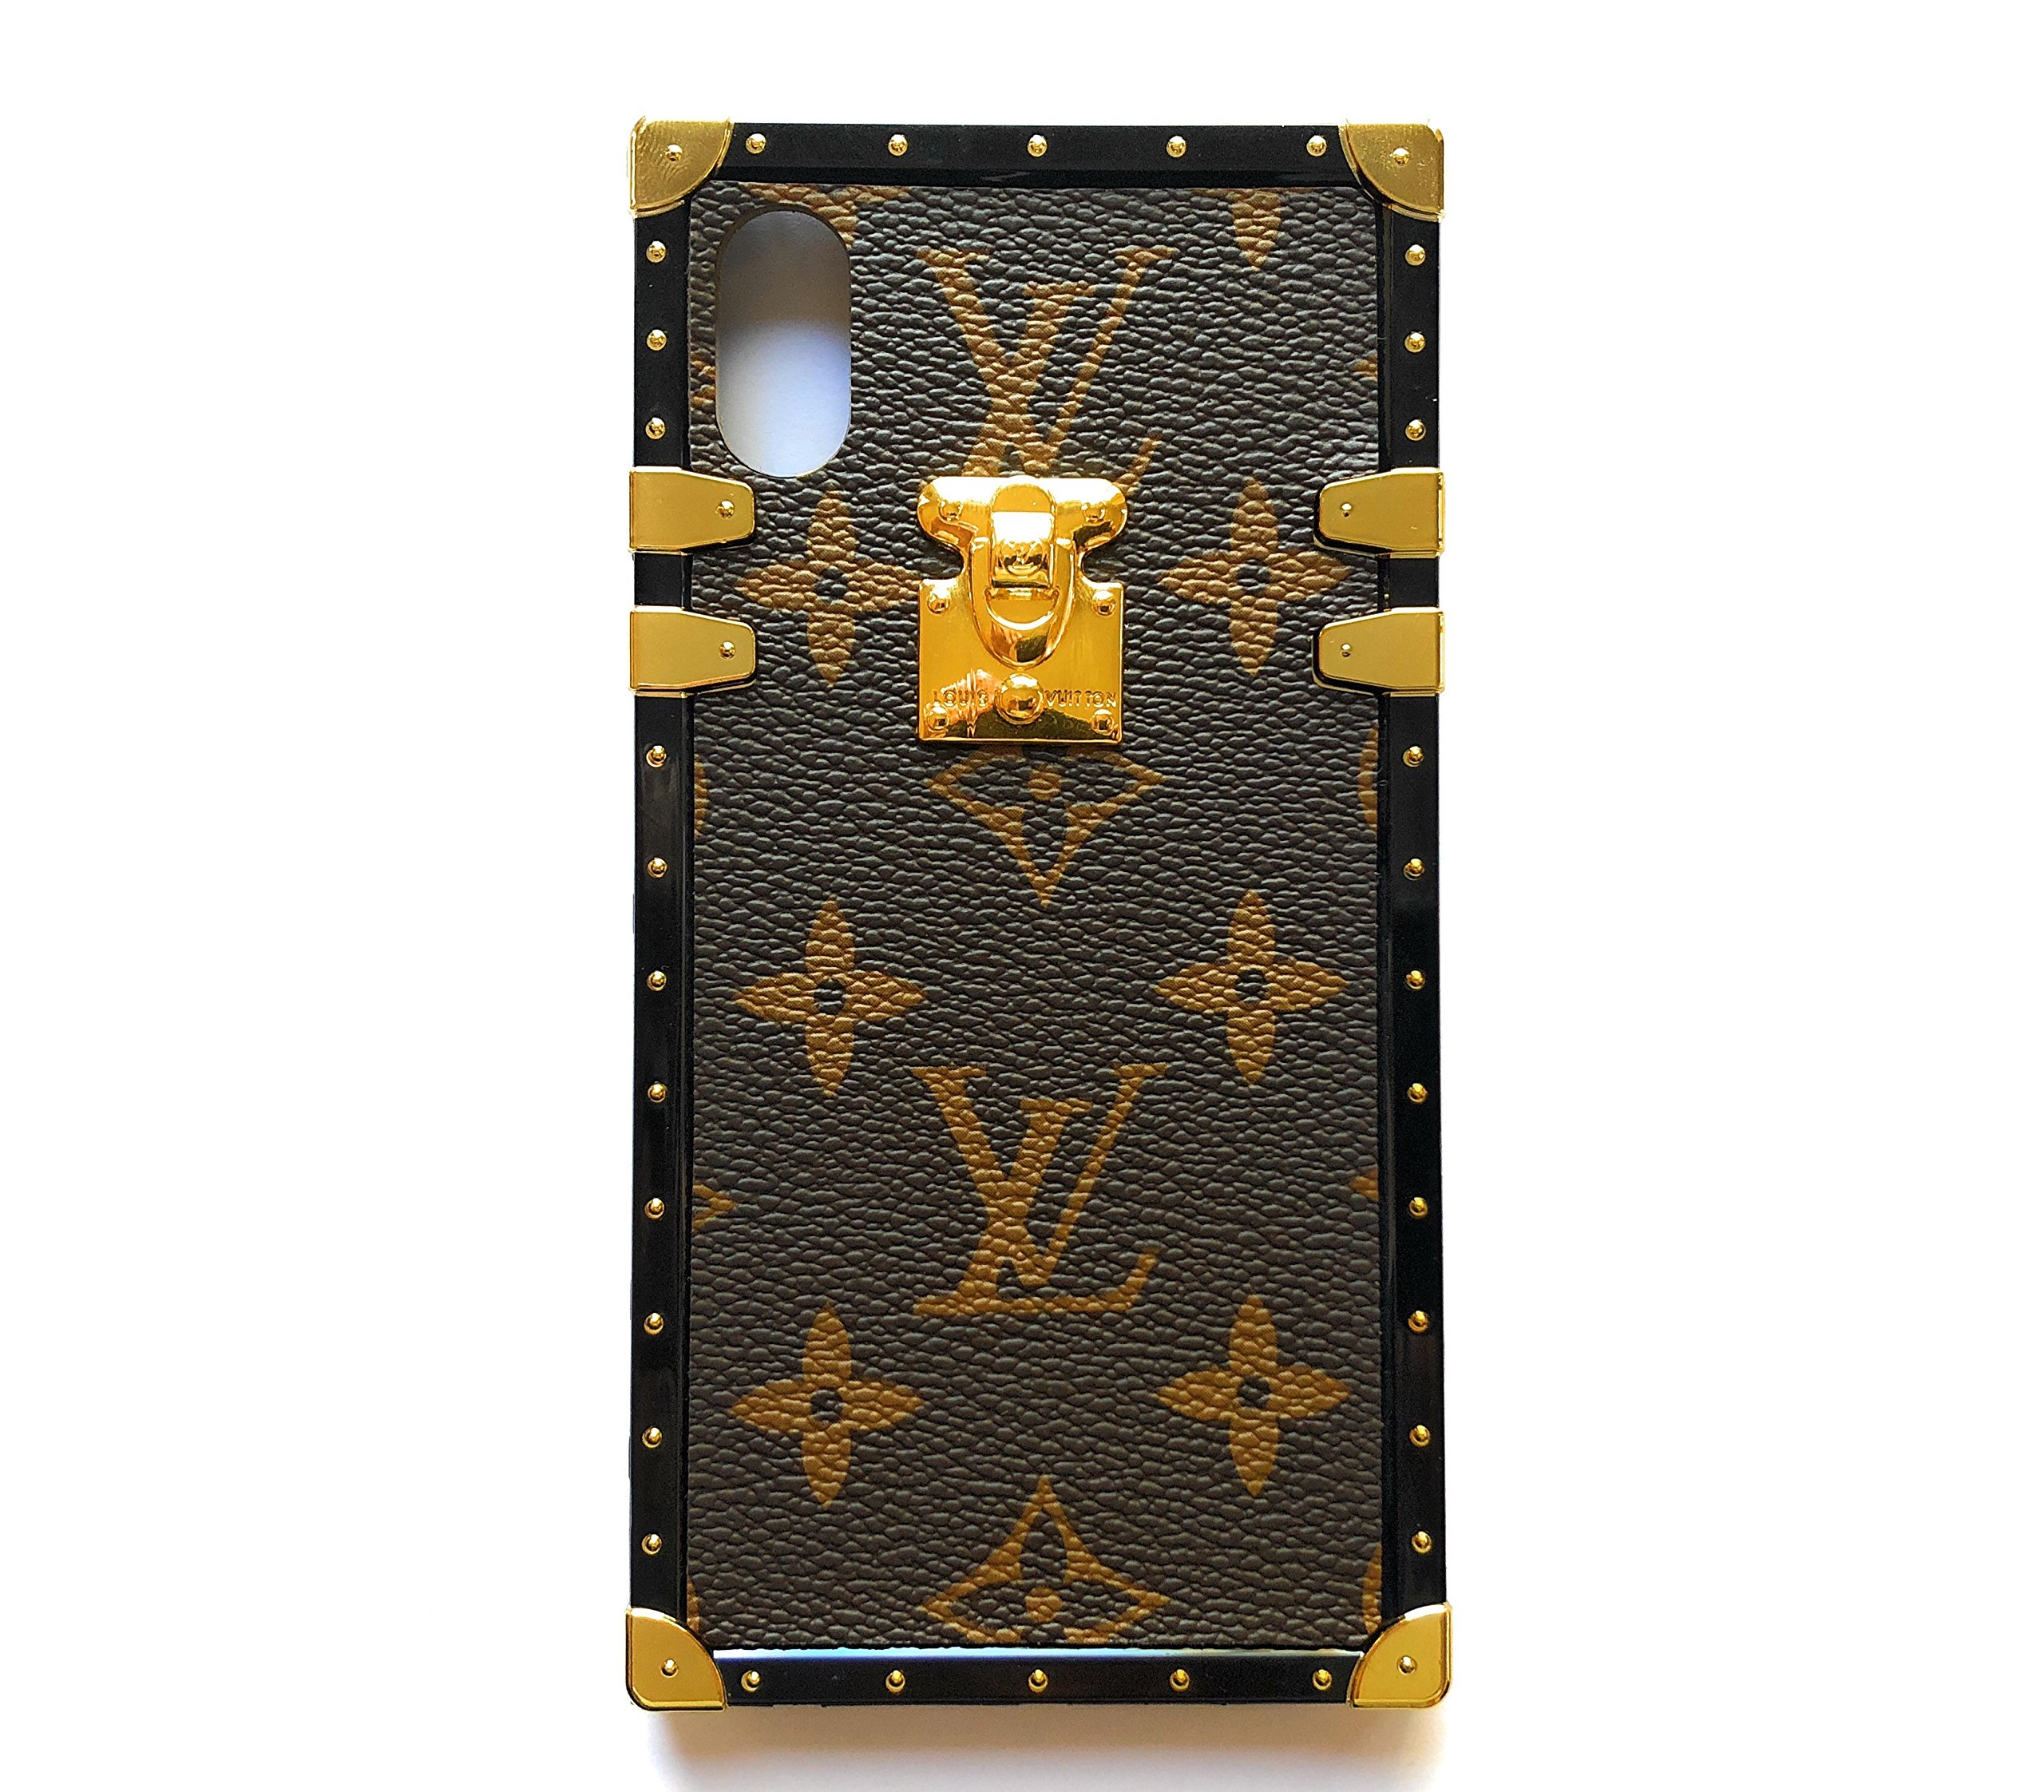 louis vuitton phone case amazon comvintage trunk luxury monogram for iphone handmade with premium silicone soft flexible anti